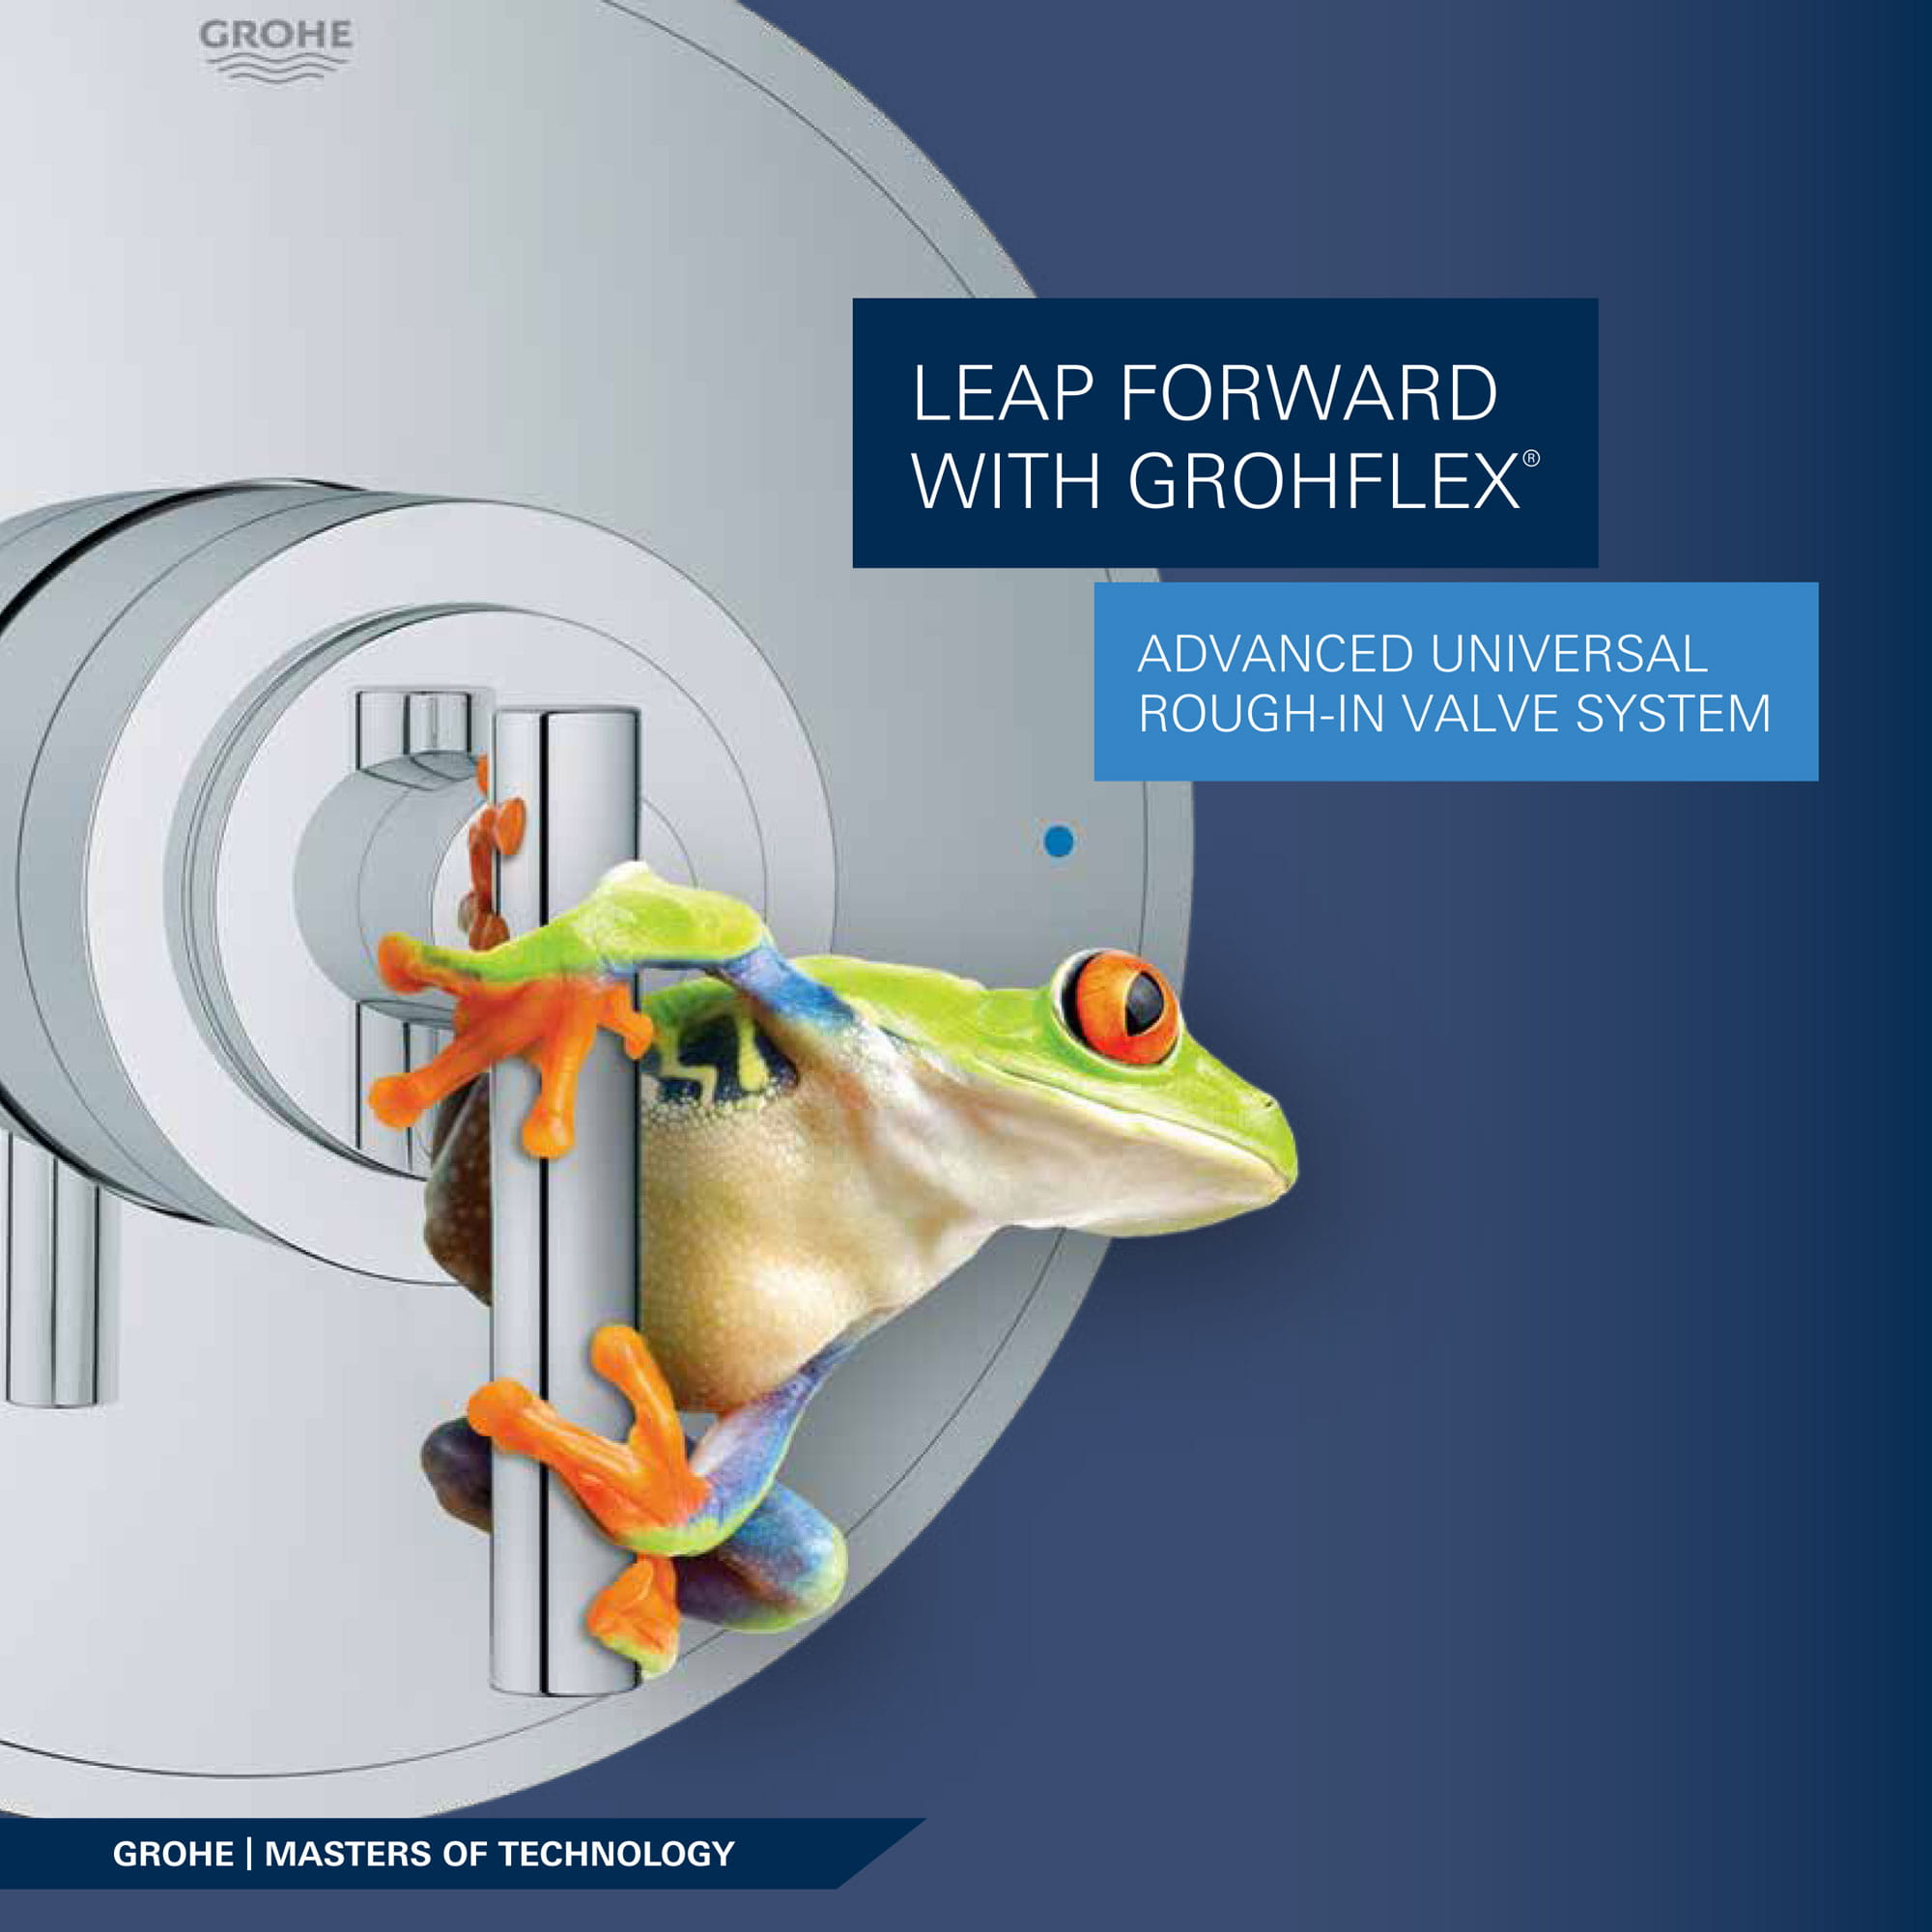 shower control with frog on it